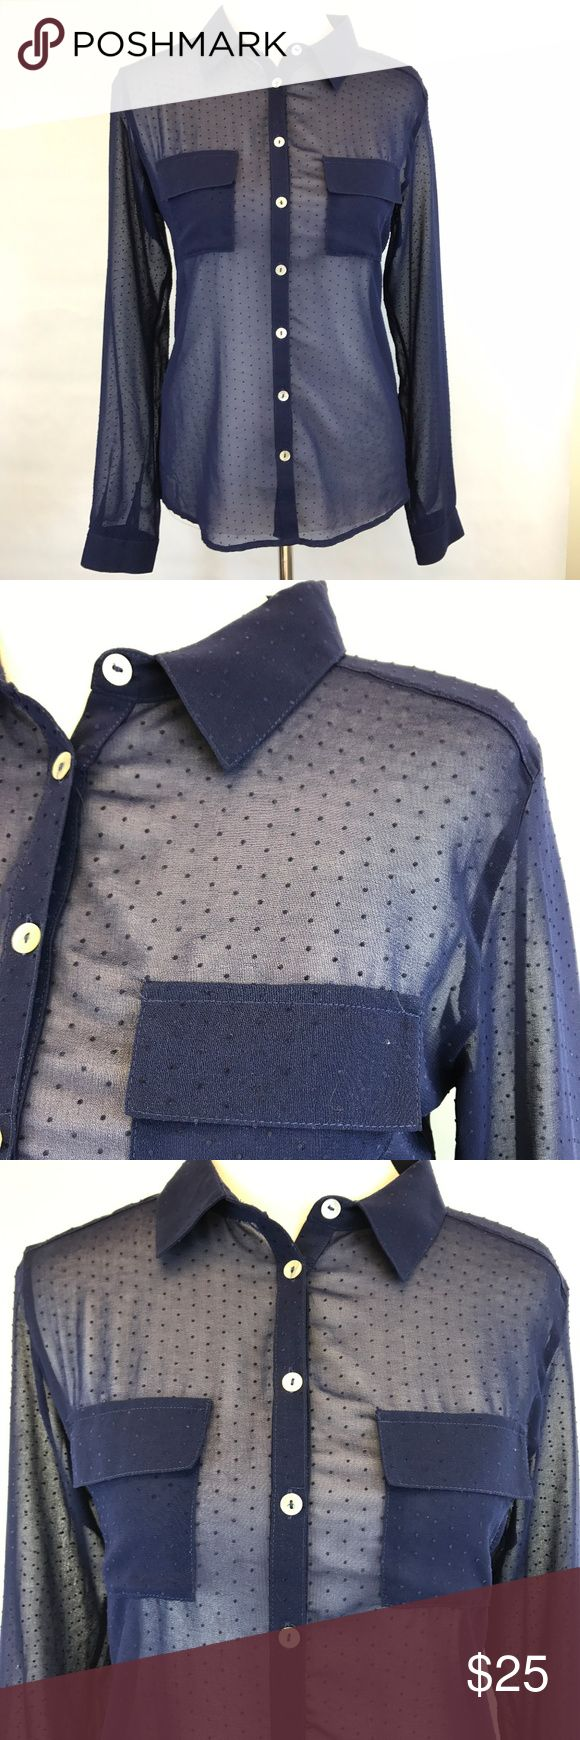 """Olive & Oak Top Size Small Blue Sheer Polka Dot Olive & Oak sheer button down top with embroidered polka dots, long sleeves and flap pockets on the chest.     Size Small 100% polyester Bust underarm to underarm:  19"""" Shoulders across the back:  15"""" Length from bottom of collar to hem:  26"""" Very good condition. Olive & Oak Tops Blouses"""